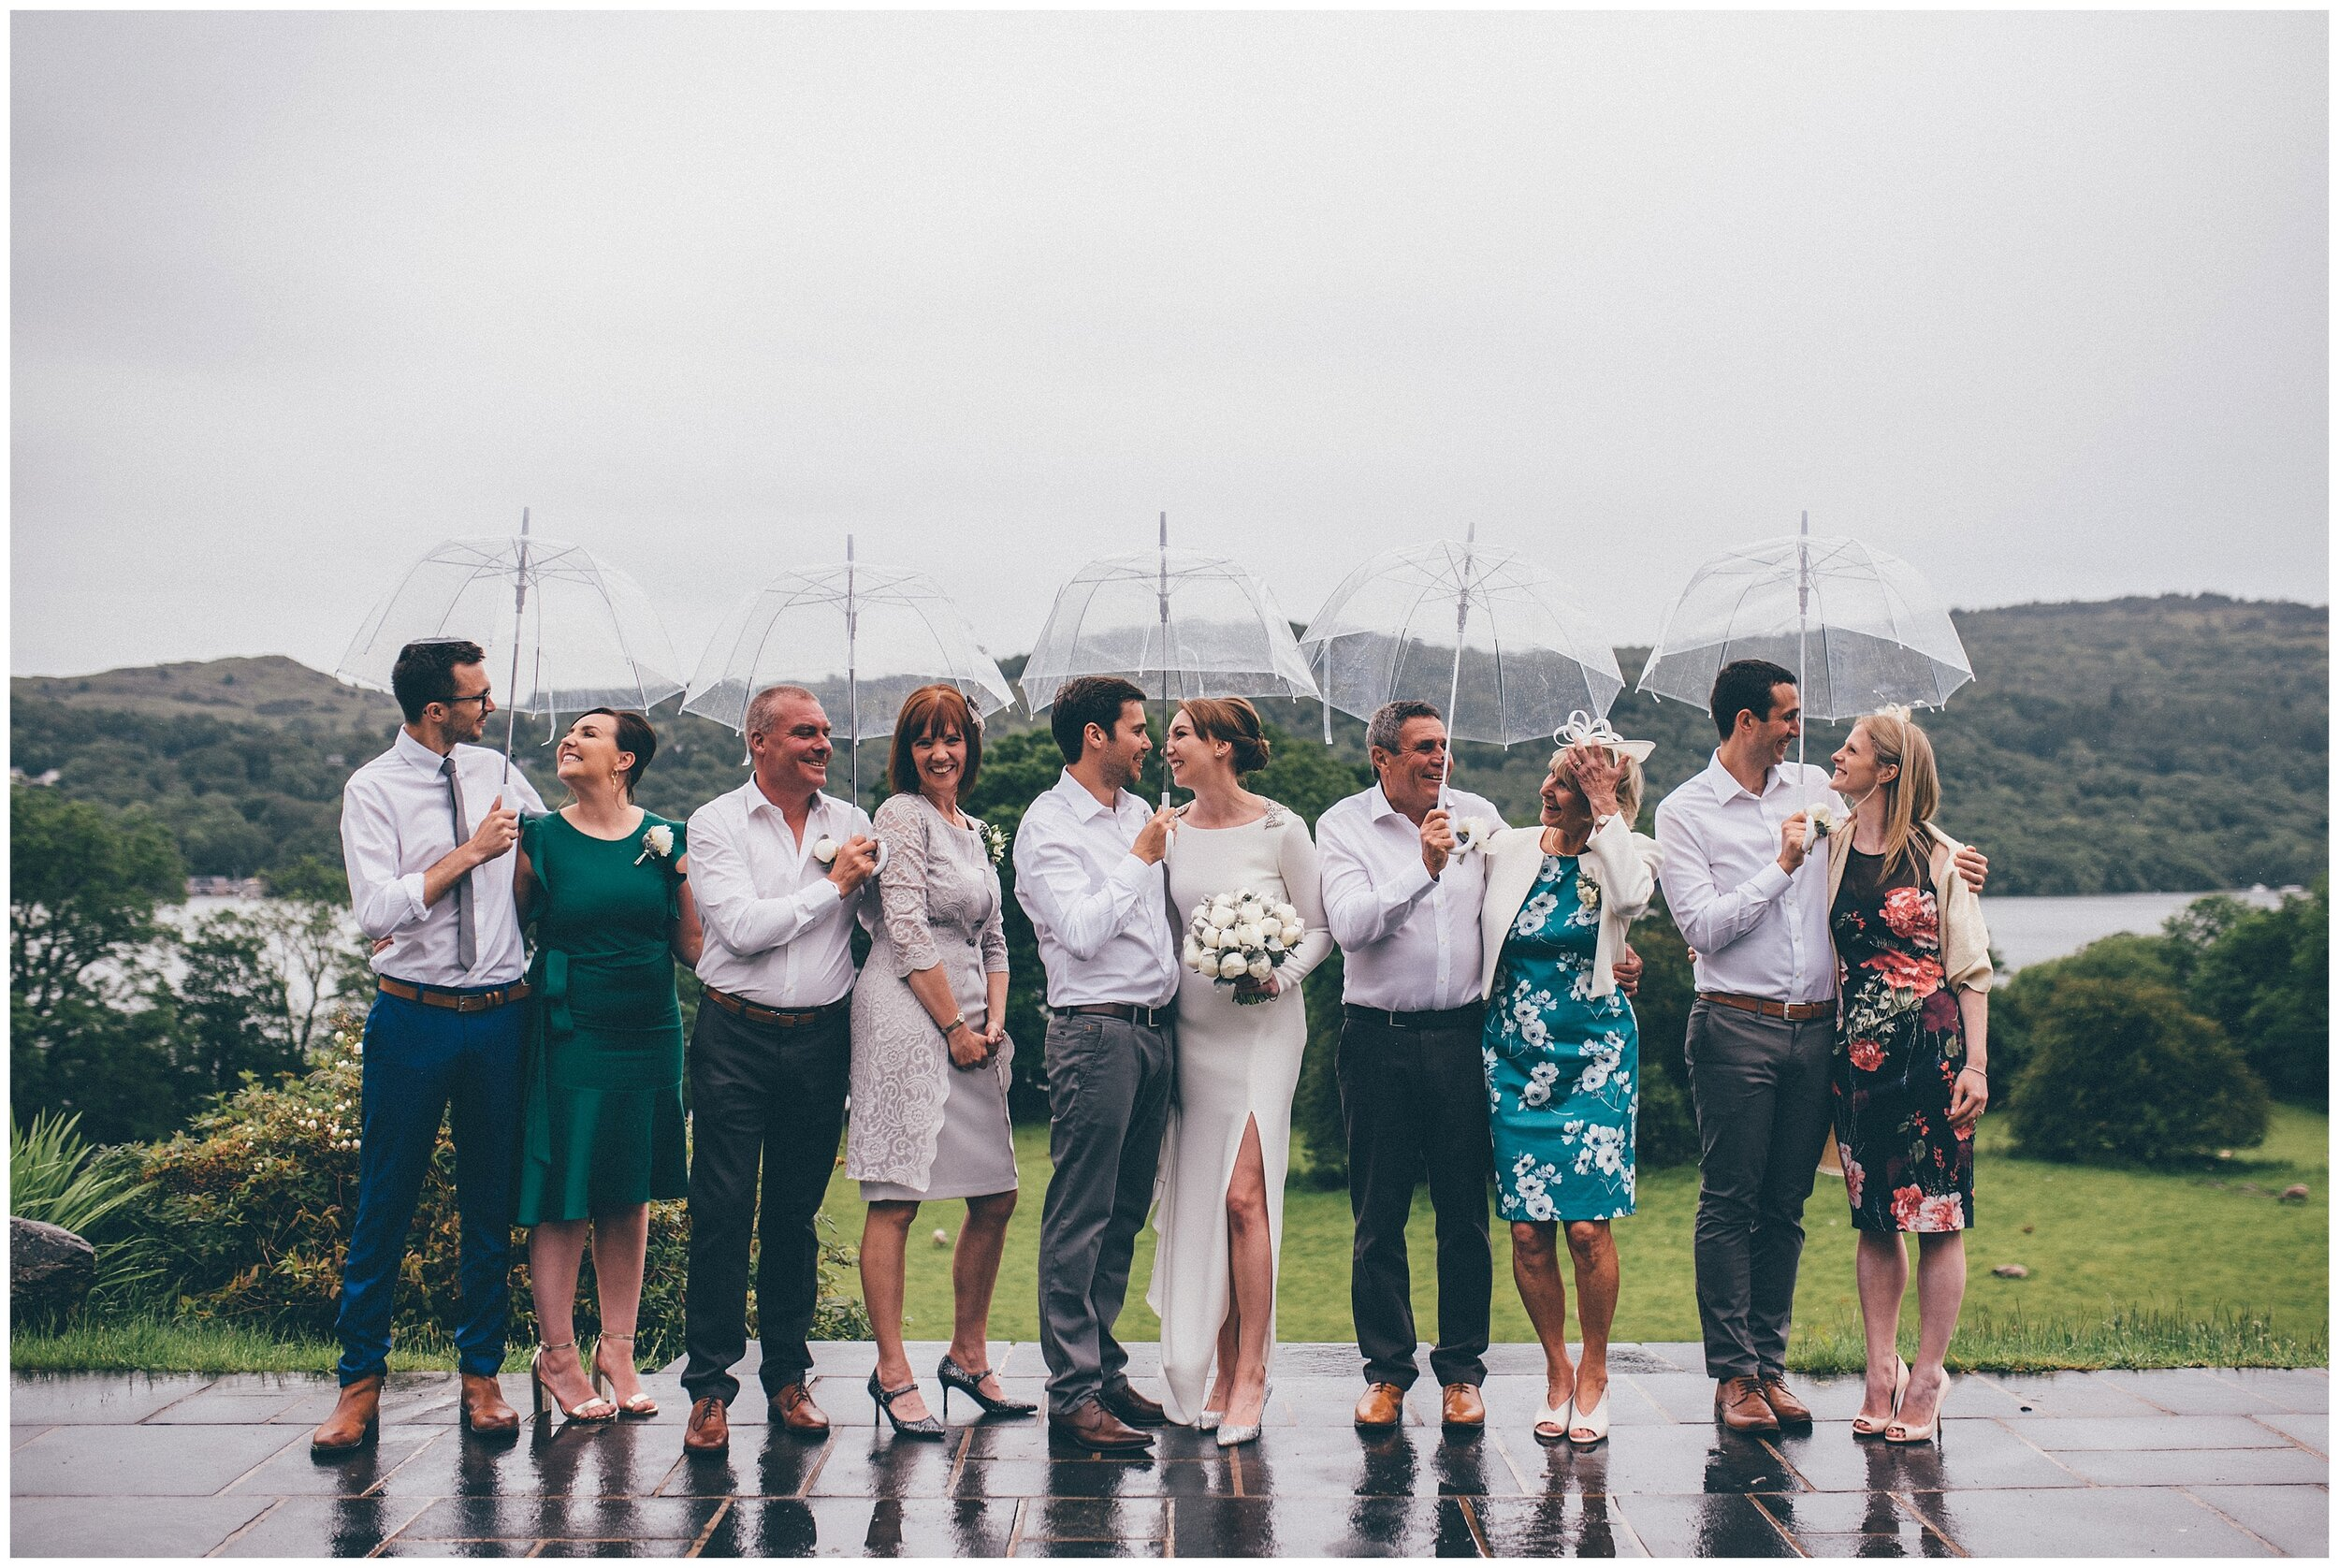 Fun family photograph in the rain at Lake Distrct wedding venue.